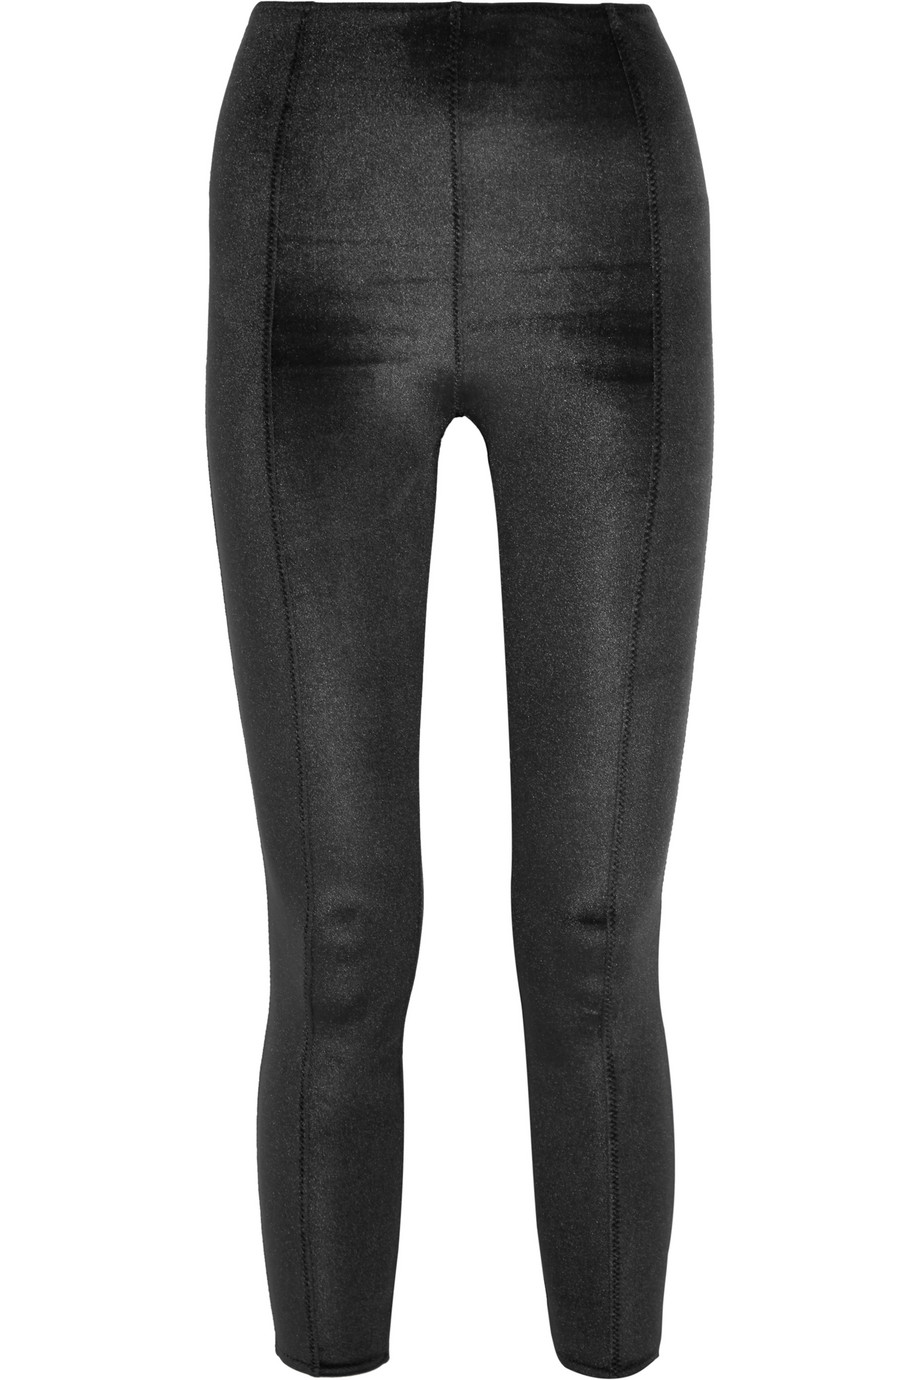 Karlie Stretch-Velvet Leggings, Lisa Marie Fernandez, Black, Women's, Size: 1